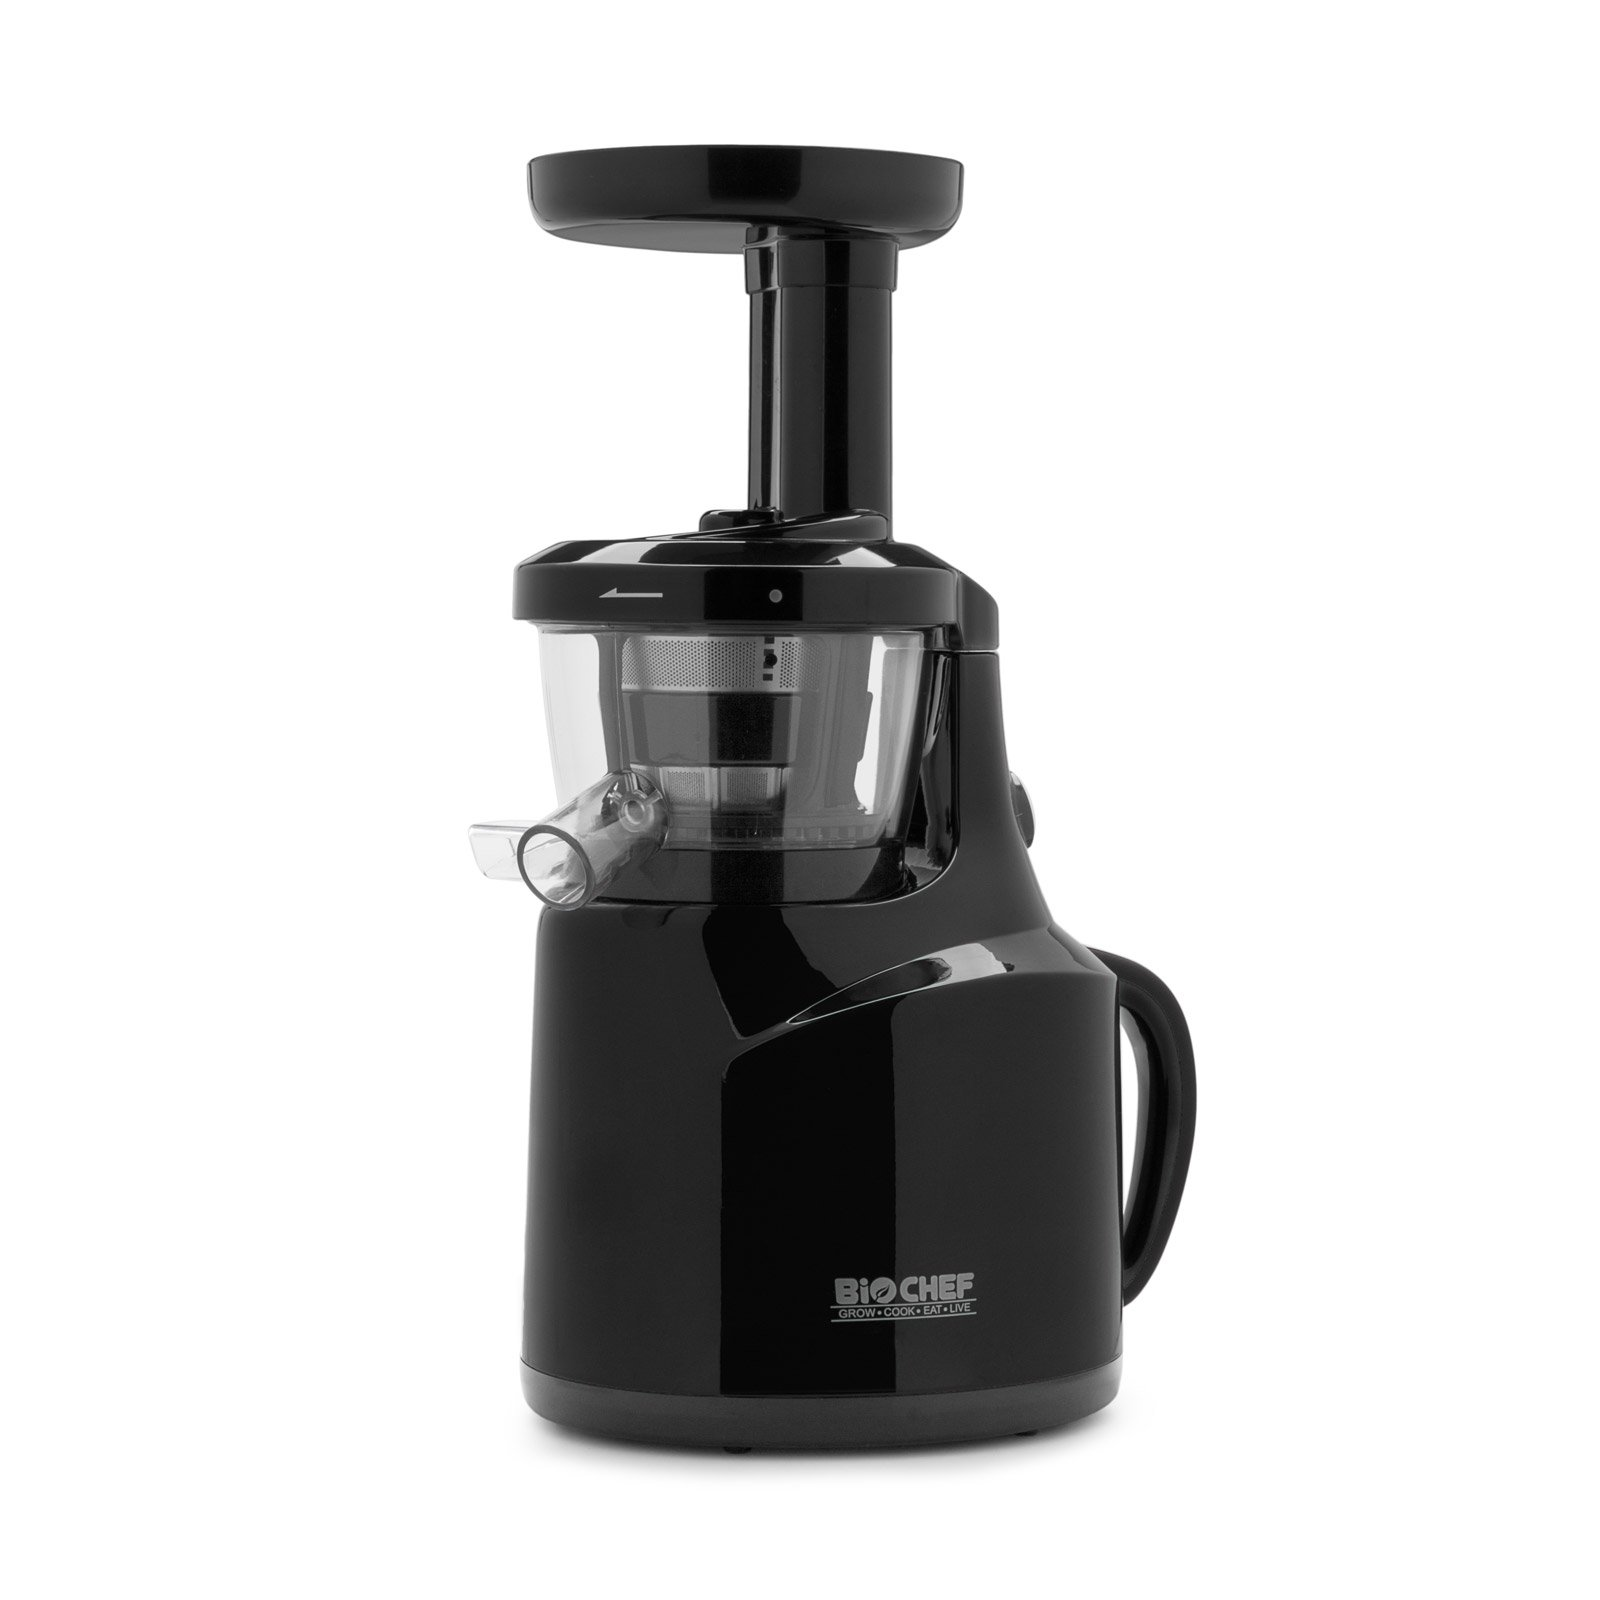 Biochef Slow Juicer Test : BioChef Slow Juicer Black Black eBay